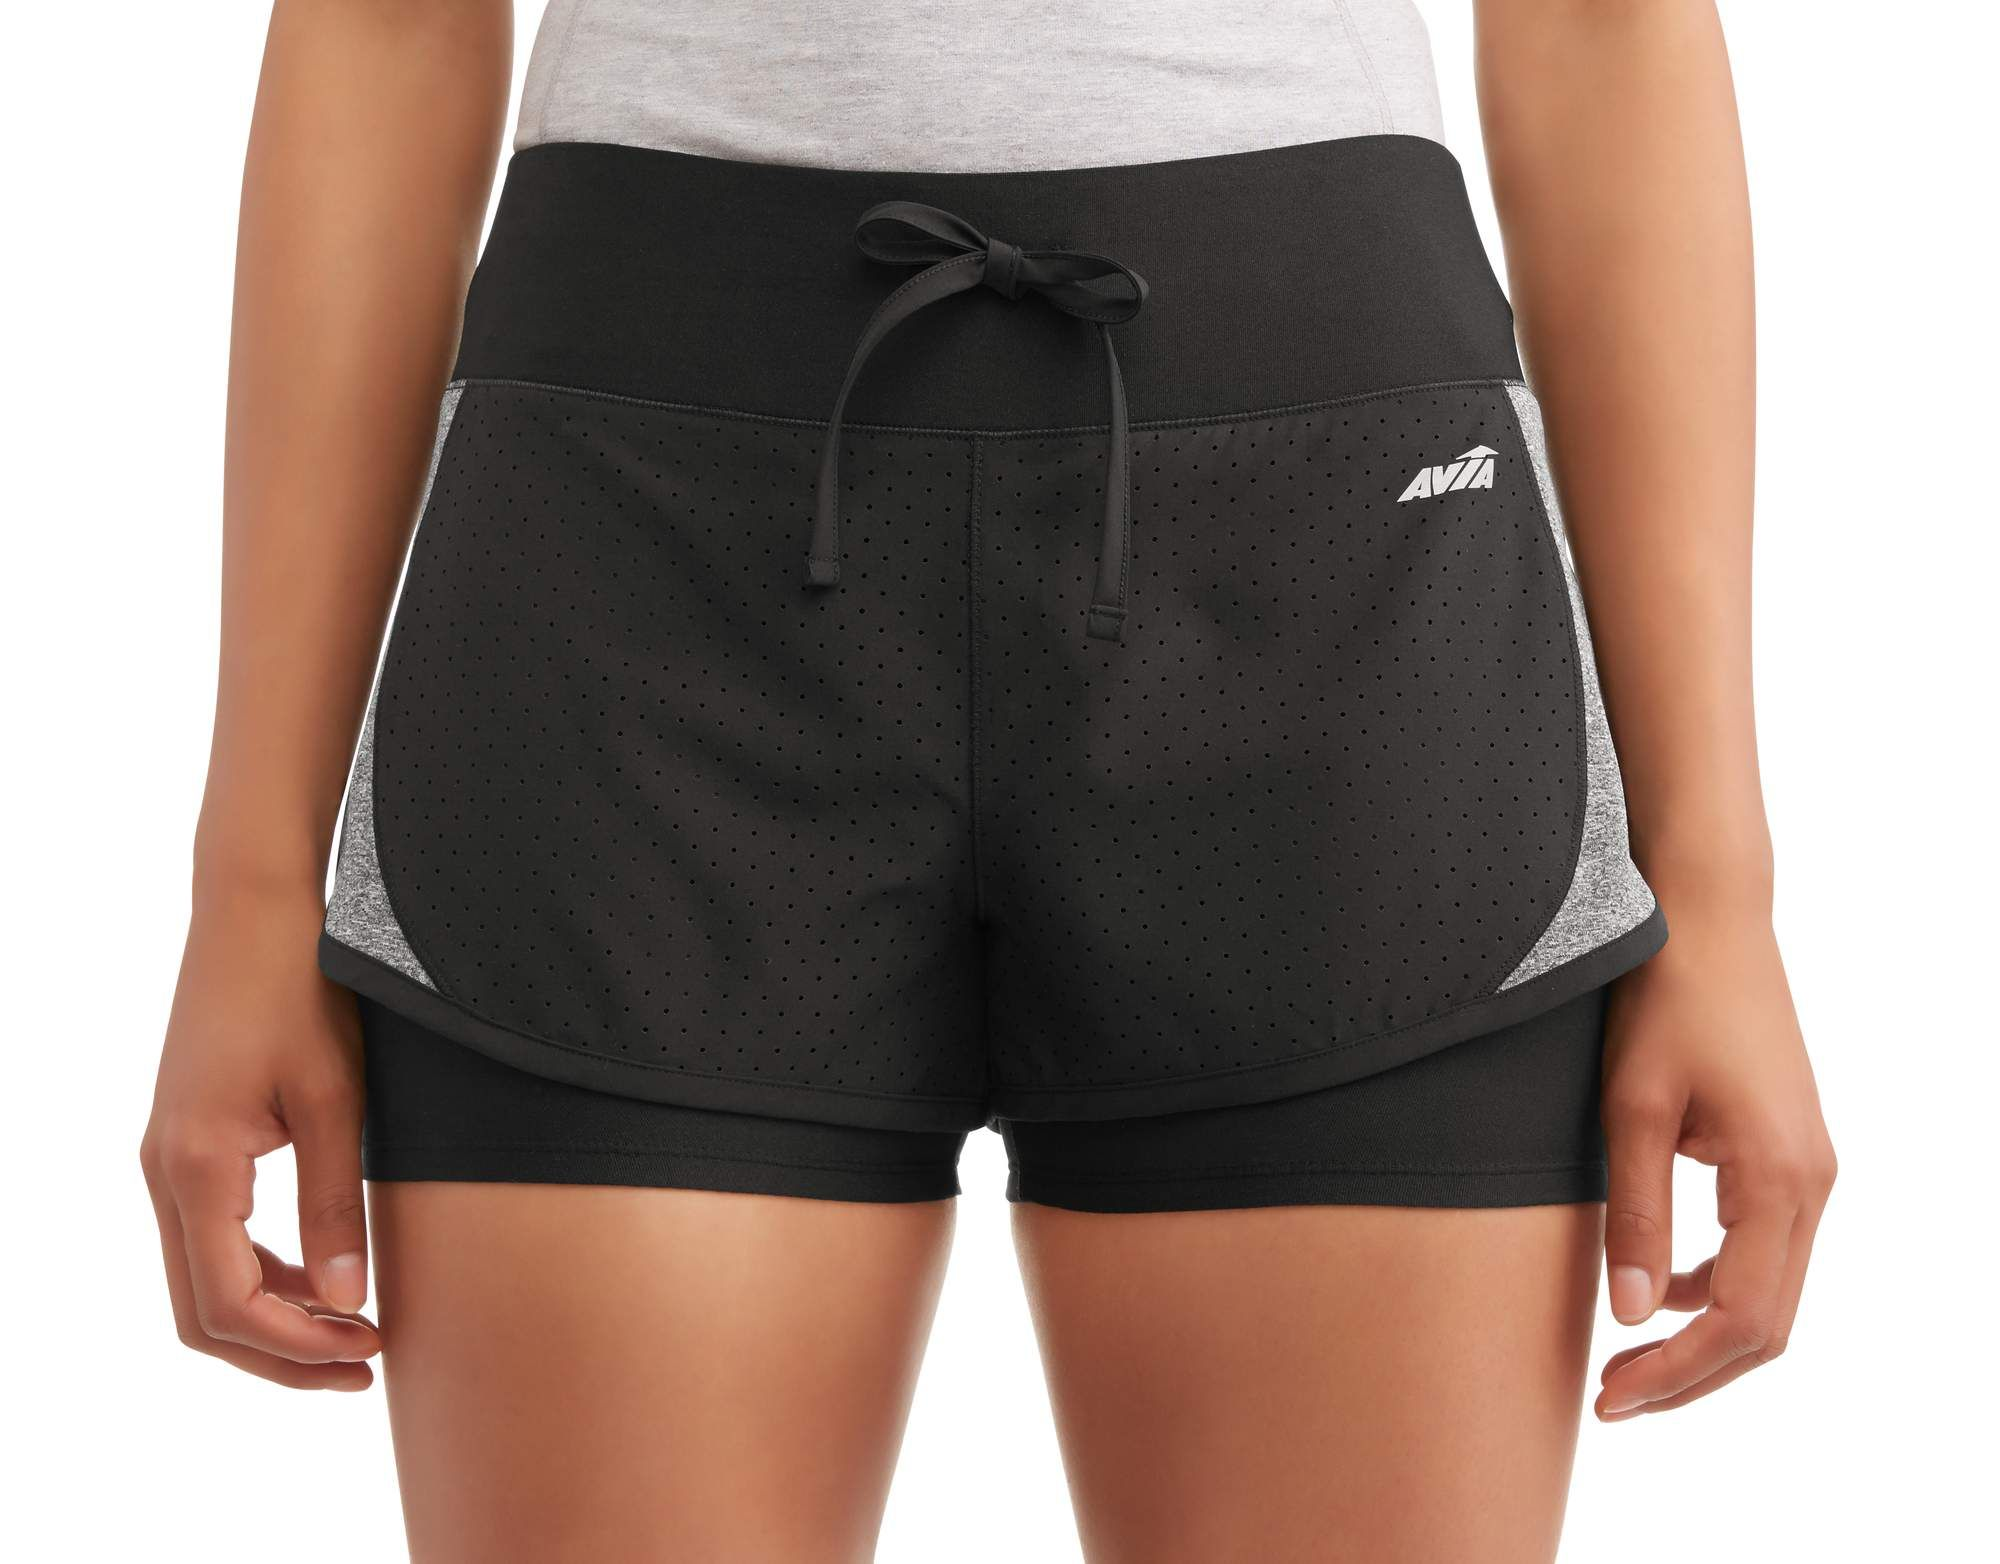 Women S Active Perforated Running Shorts With Built In Compression Shorts Perforated Active Women Running Shorts Compression Shorts Active Women